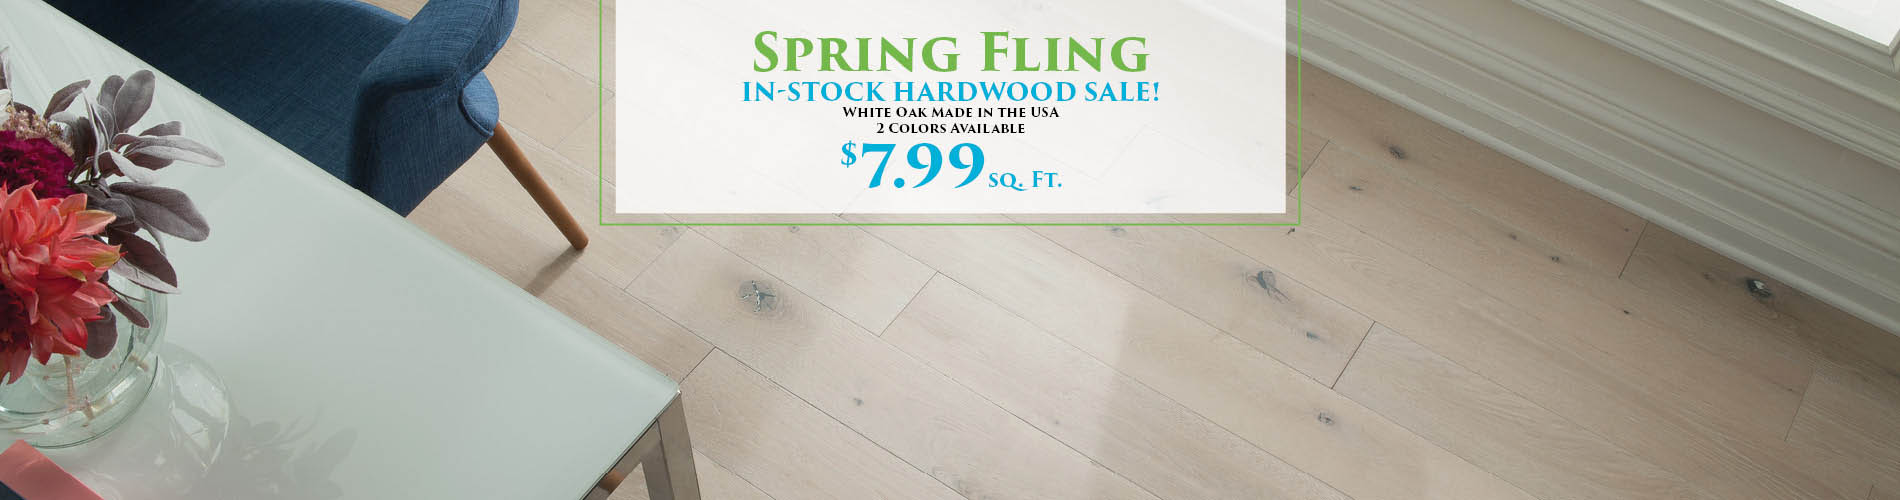 In-Stock White Oak hardwood on sale starting at $7.99!  2 colors available!